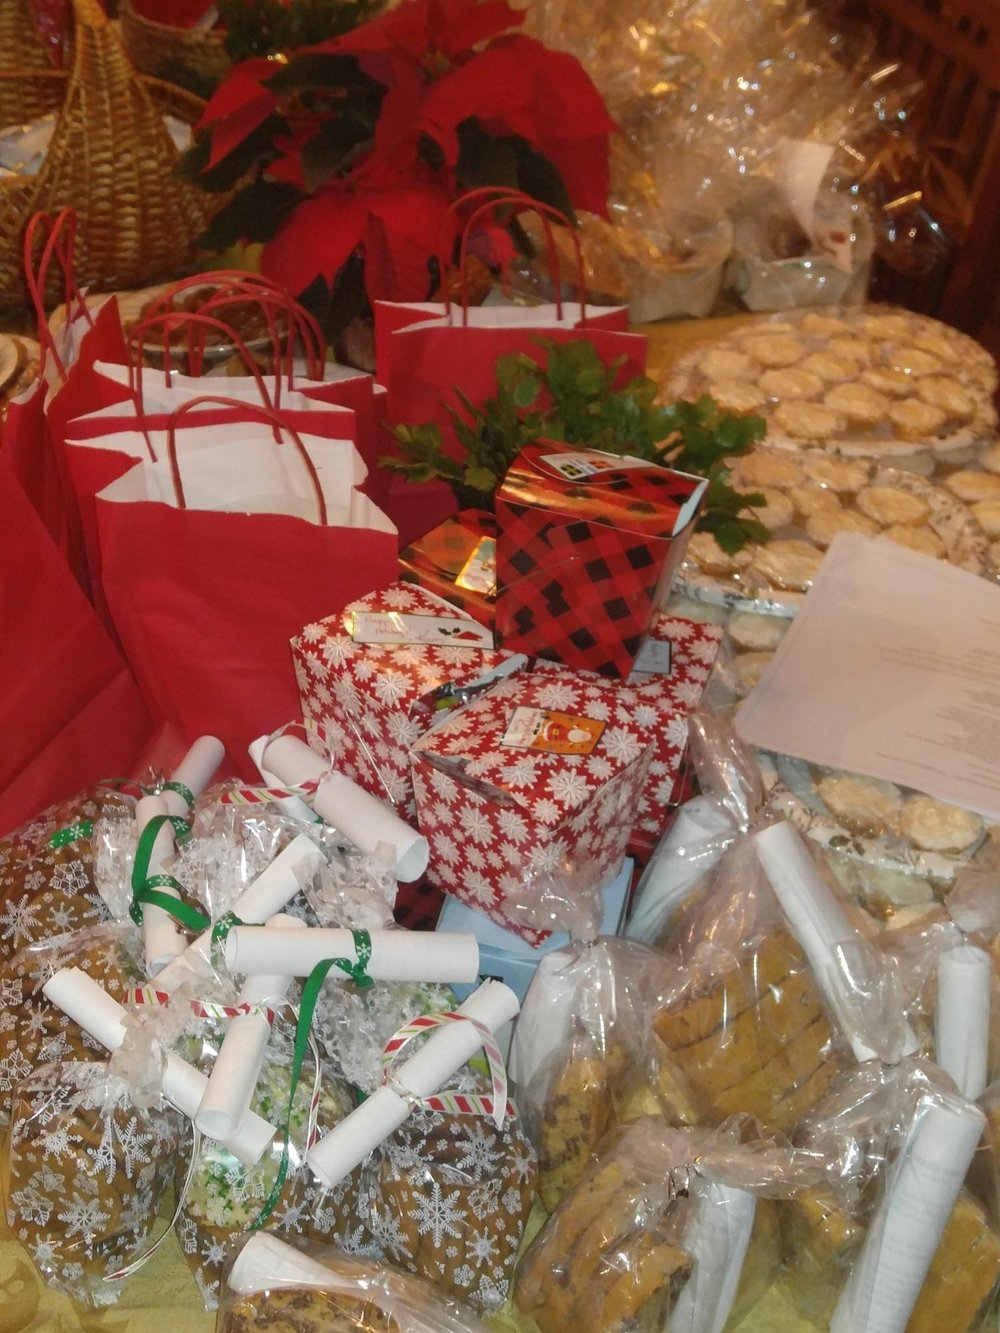 The neighborhood cookie exchange gathering (9 dozen of 9 different concoctions!)